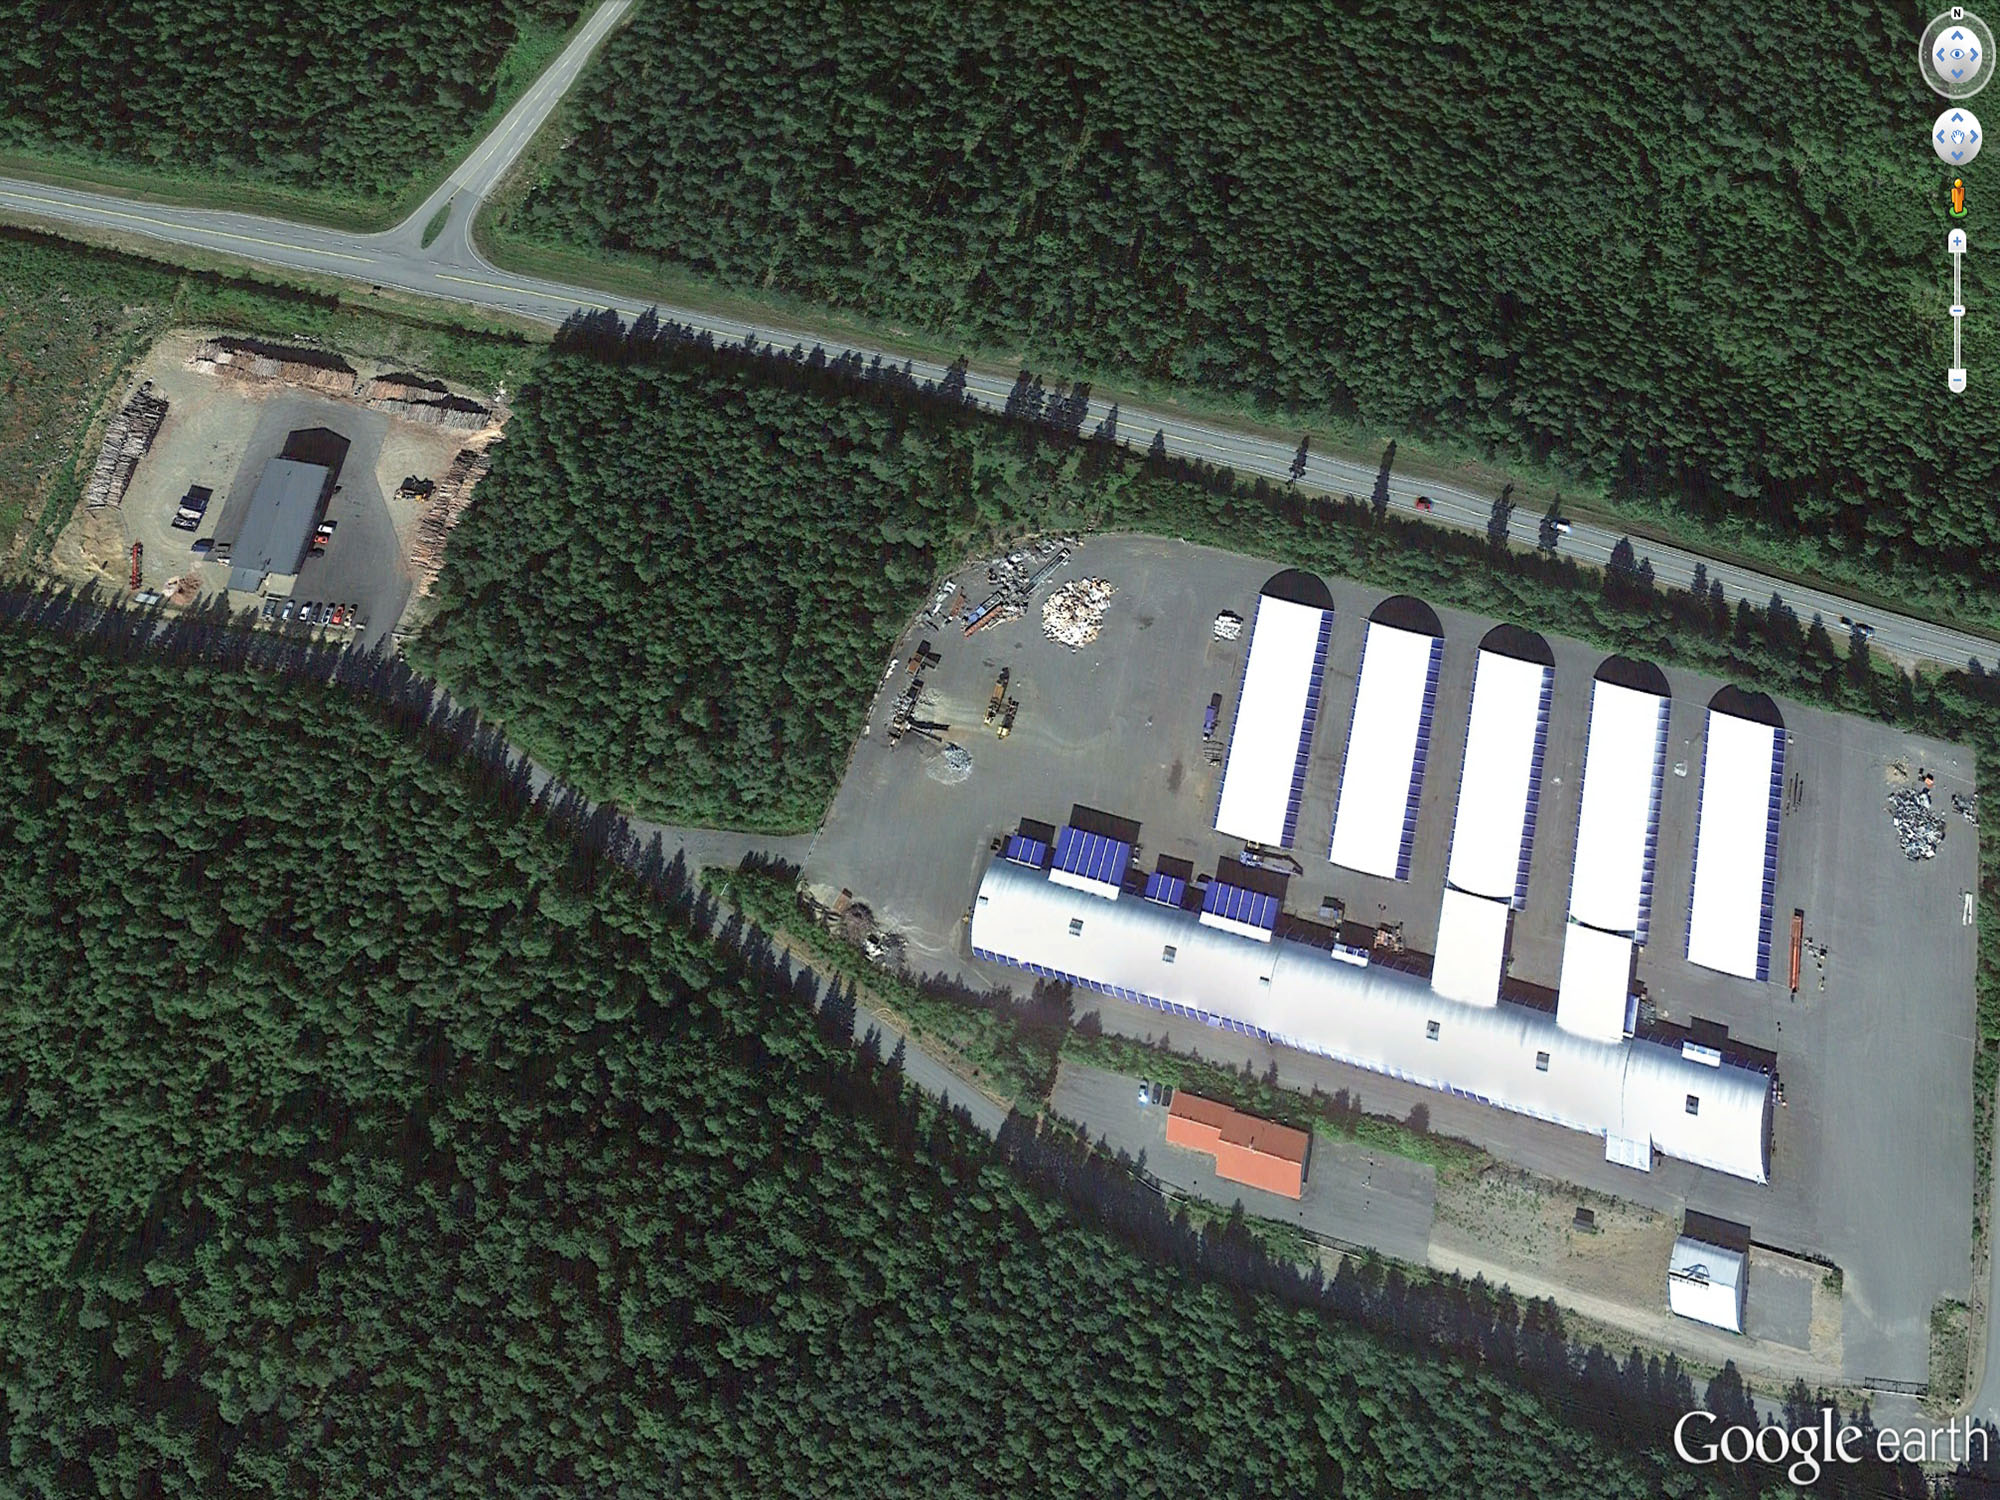 af-20160918-finlande-google-earth-usine